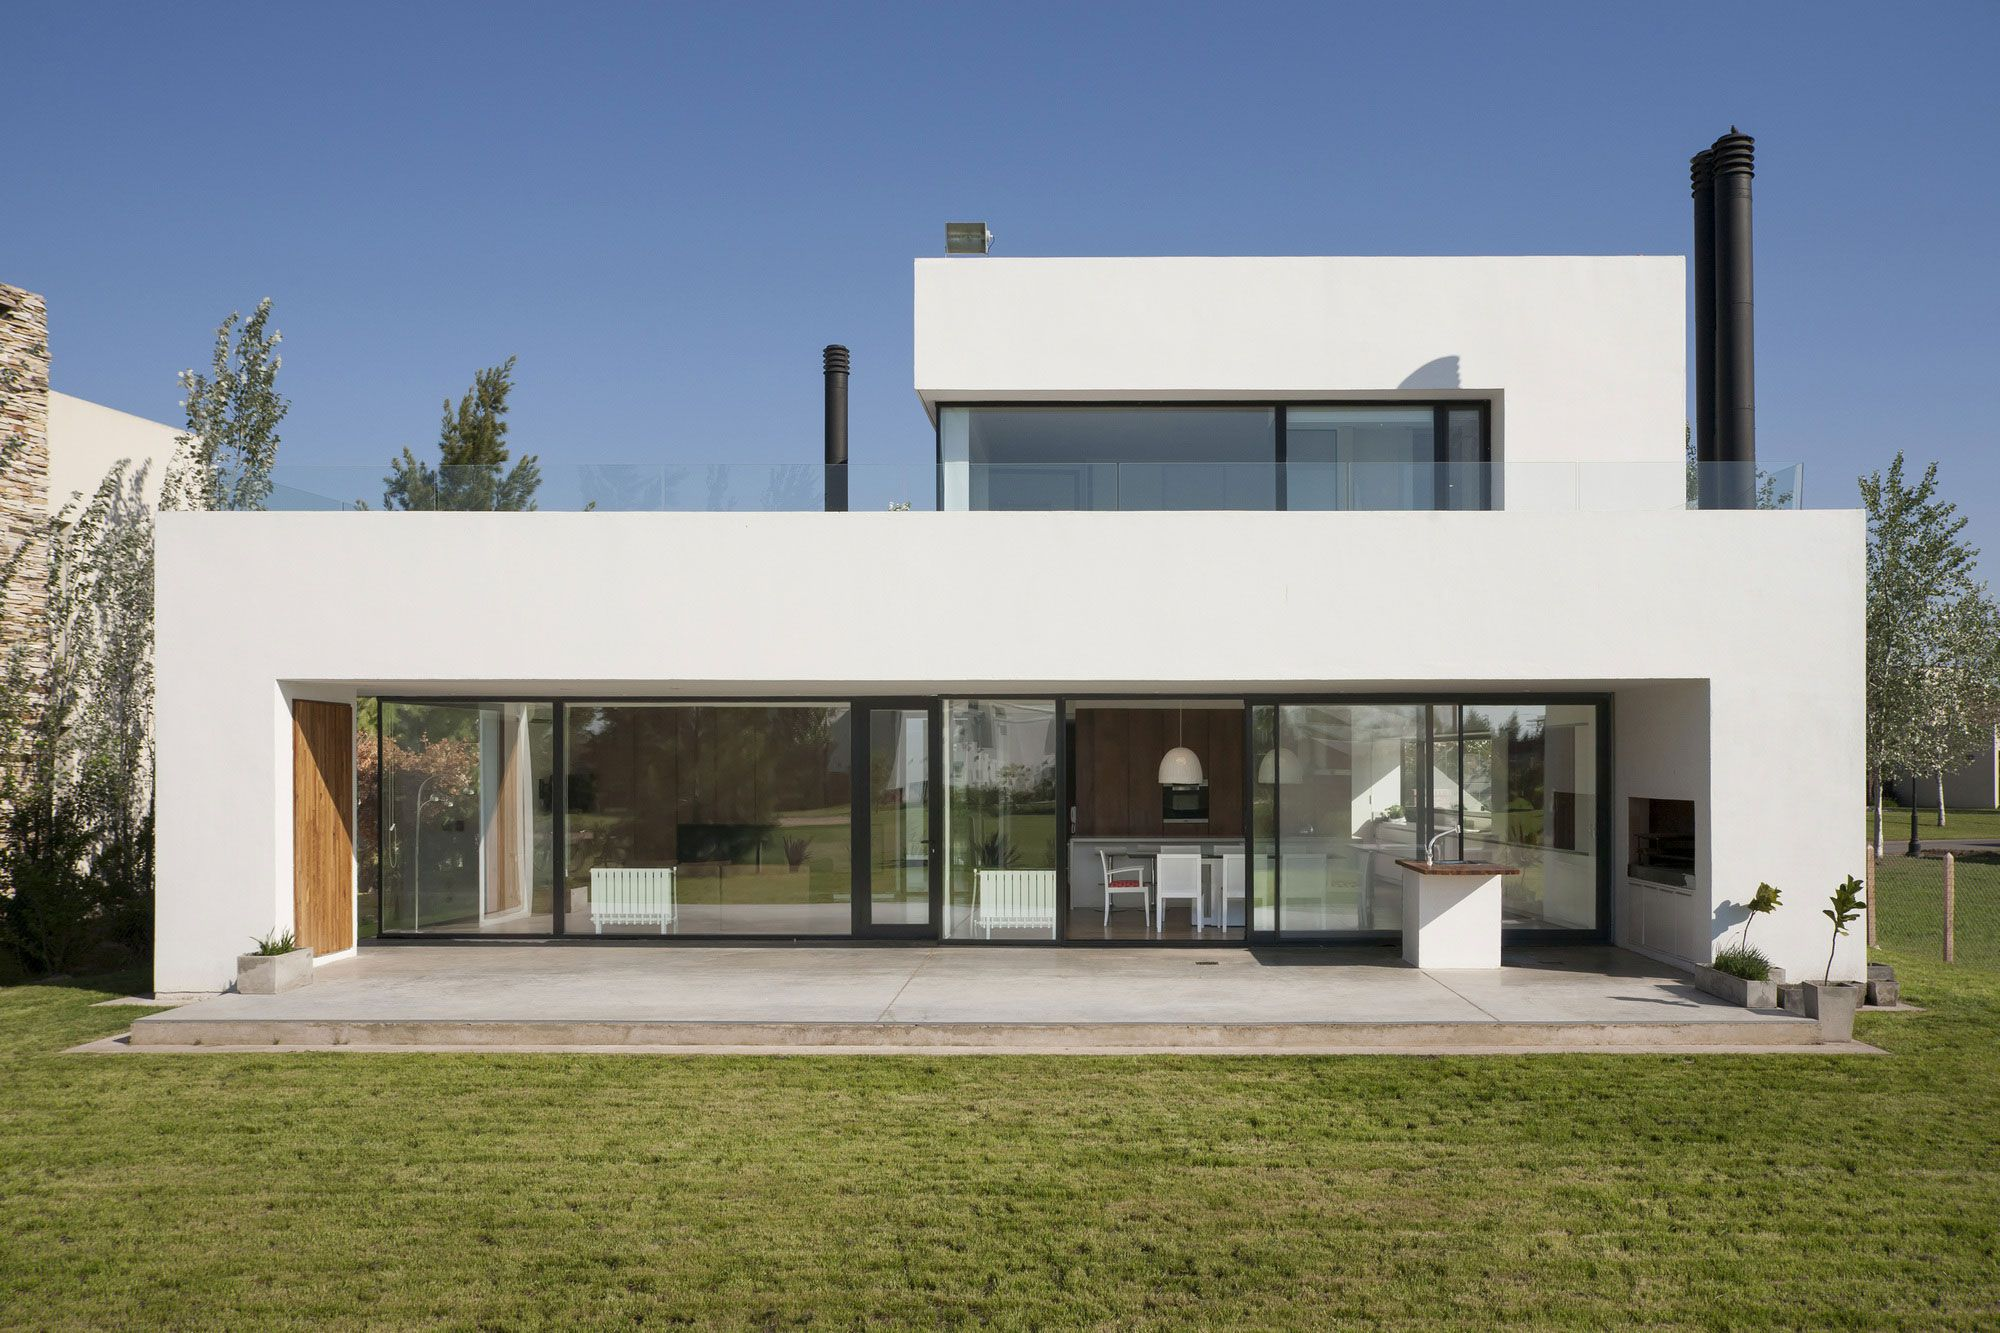 Casa mc golf club by vismaracorsi arquitectos caandesign for Casa minimalista 120m2